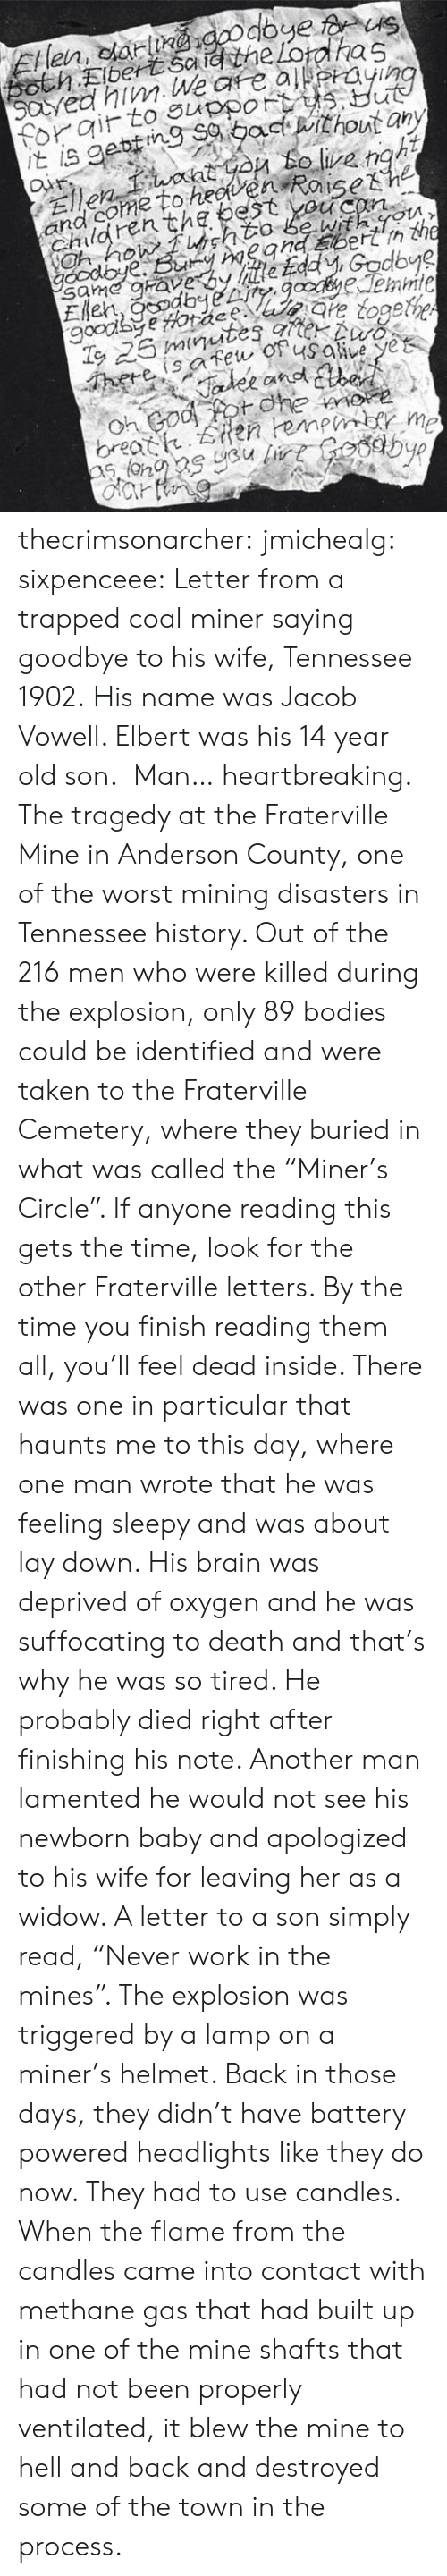 """Bodies , Taken, and The Worst: and come to heoven  Chden thg bestsh2  With m  Uu? thecrimsonarcher: jmichealg:  sixpenceee:  Letter from a trapped coal miner saying goodbye to his wife, Tennessee 1902.His name was Jacob Vowell. Elbert was his 14 year old son.  Man… heartbreaking.    The tragedy at the Fraterville Mine in Anderson County, one of the worst mining disasters in Tennessee history. Out of the 216 men who were killed during the explosion, only 89 bodies could be identified and were taken to the Fraterville Cemetery, where they buried in what was called the """"Miner's Circle"""". If anyone reading this gets the time, look for the other Fraterville letters. By the time you finish reading them all, you'll feel dead inside. There was one in particular that haunts me to this day, where one man wrote that he was feeling sleepy and was about lay down. His brain was deprived of oxygen and he was suffocating to death and that's why he was so tired. He probably died right after finishing his note. Another man lamented he would not see his newborn baby and apologized to his wife for leaving her as a widow. A letter to a son simply read, """"Never work in the mines"""".   The explosion was triggered by a lamp on a miner's helmet. Back in those days, they didn't have battery powered headlights like they do now. They had to use candles. When the flame from the candles came into contact with methane gas that had built up in one of the mine shafts that had not been properly ventilated, it blew the mine to hell and back and destroyed some of the town in the process."""